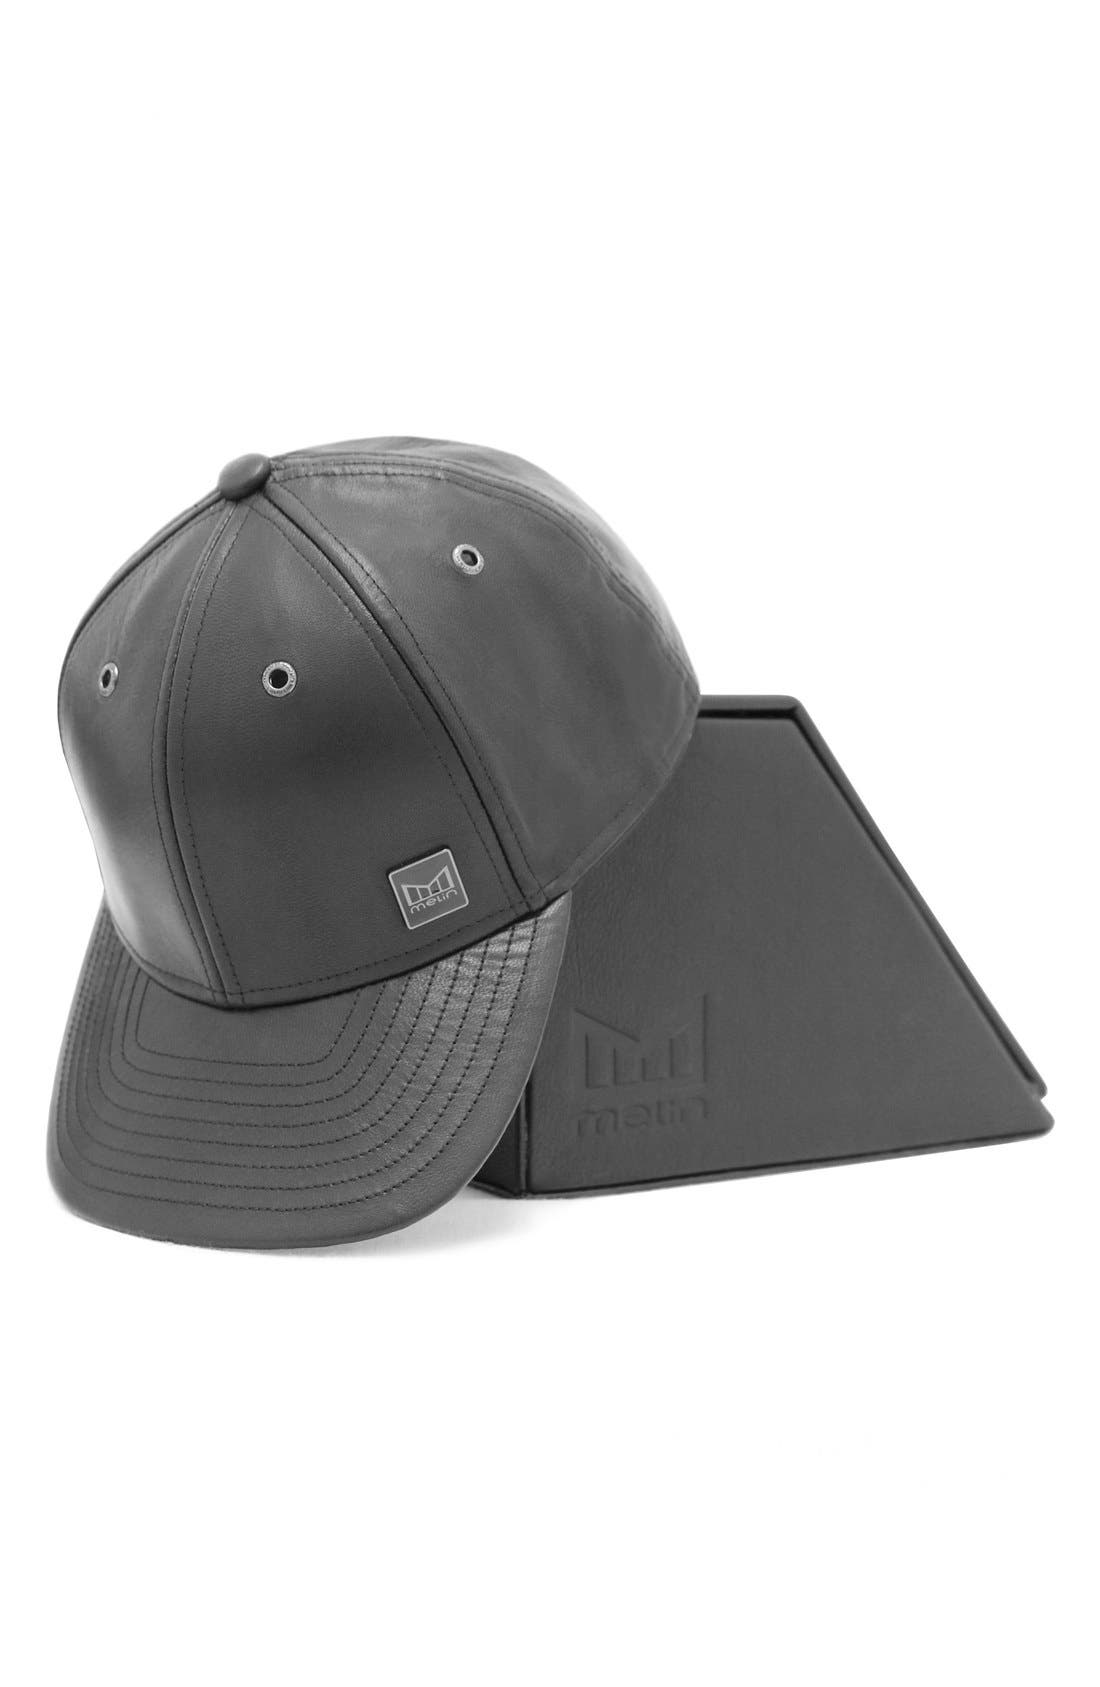 check out 7e4fe 66aa3 Men s Hats, Hats for Men   Nordstrom